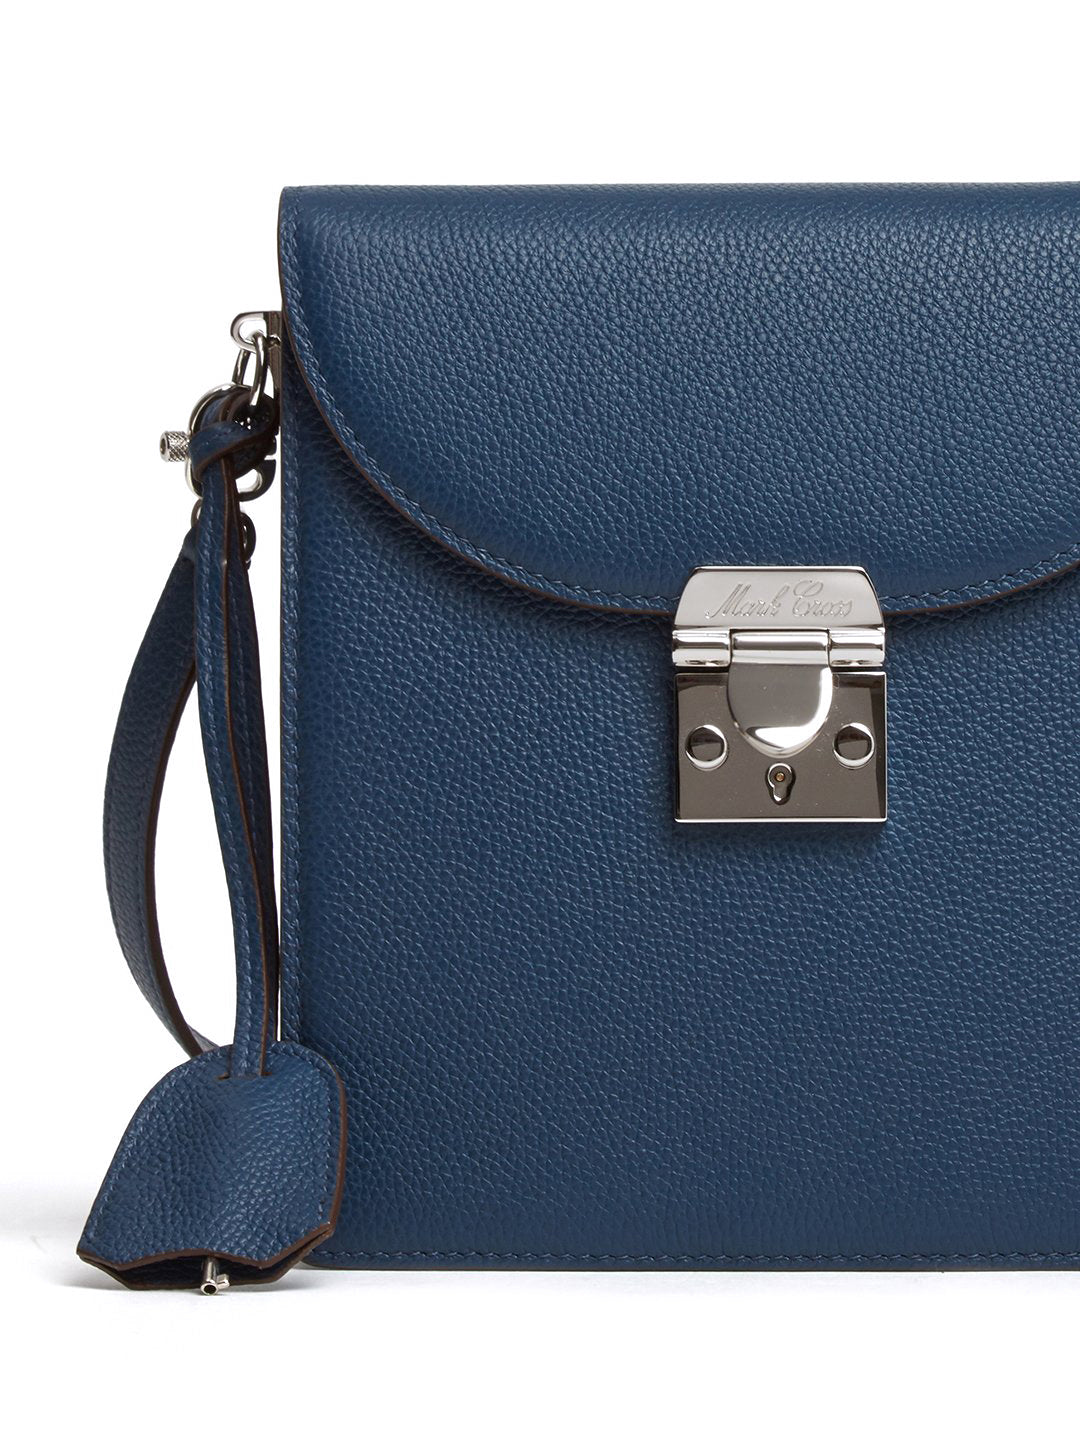 Mark Cross Patrick Leather Crossbody Bag Tumbled Grain Navy Detail